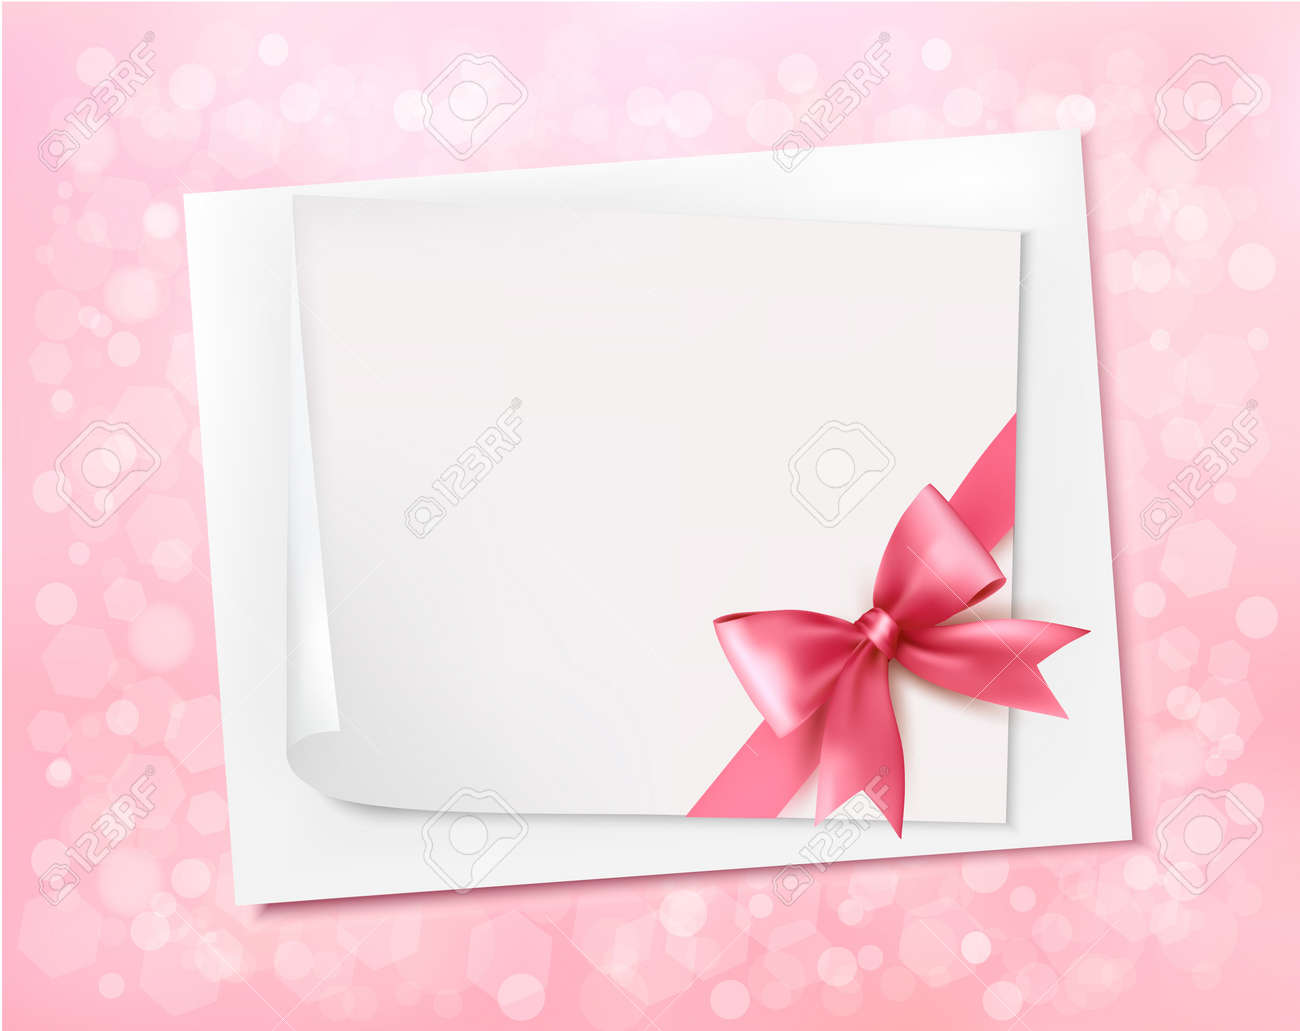 Holiday background with gift pink bow and ribbon. Stock Vector - 17473559